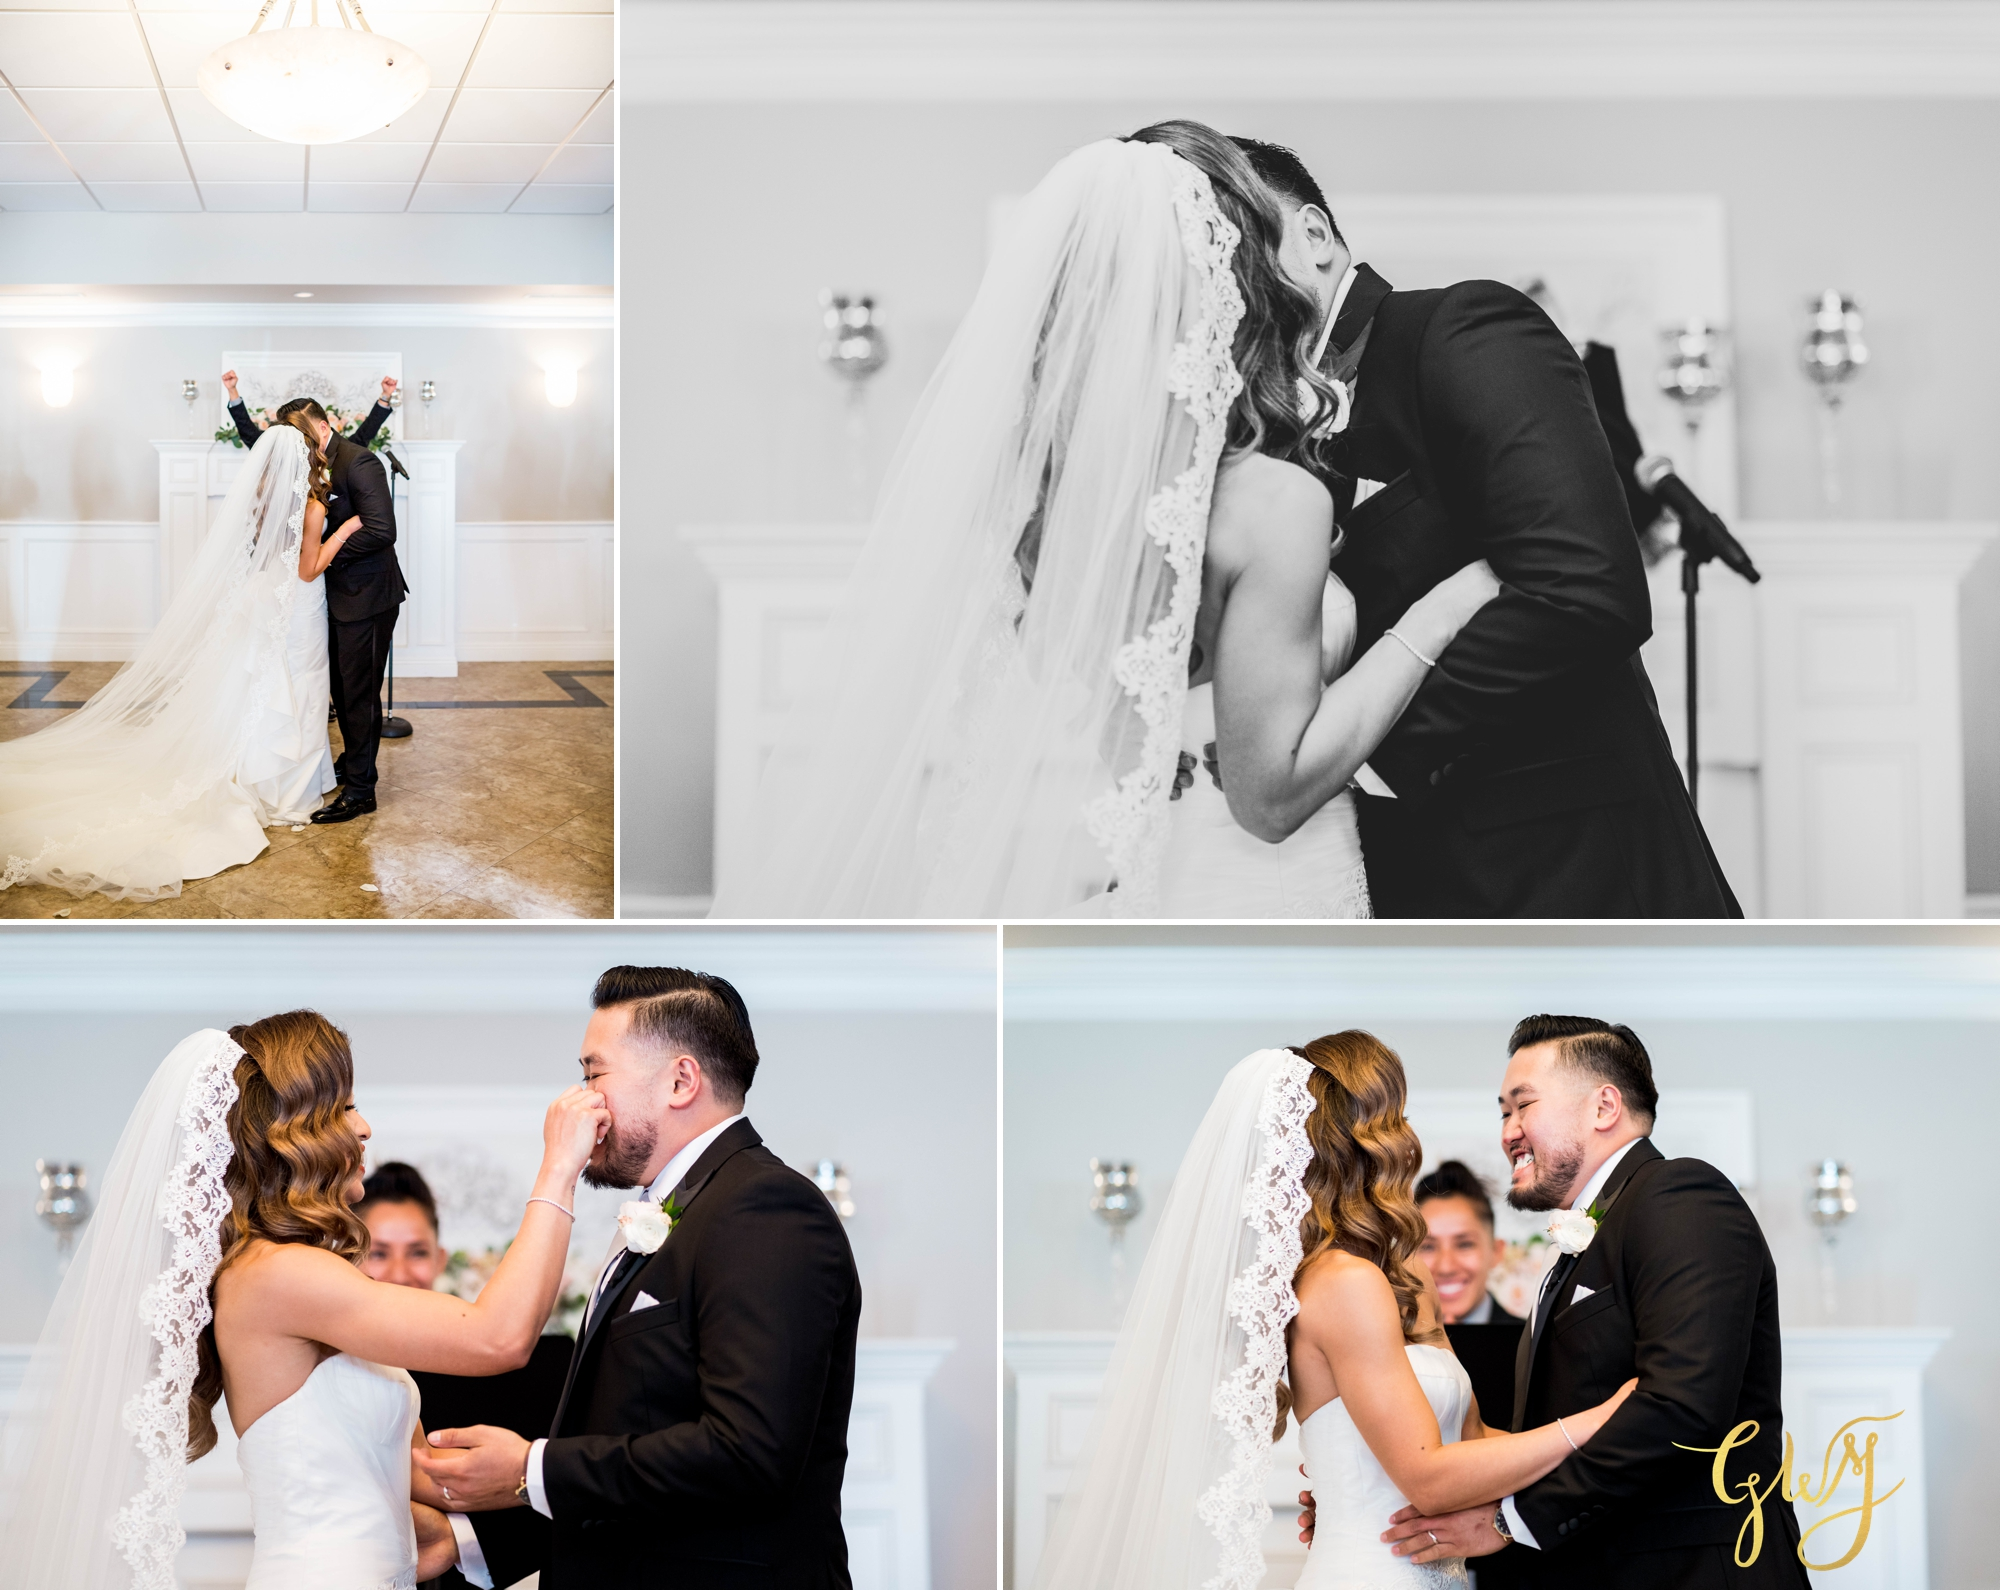 Andy + Caselyn's White House Event Center Orange County Spring Wedding by Glass Woods Media 31.jpg